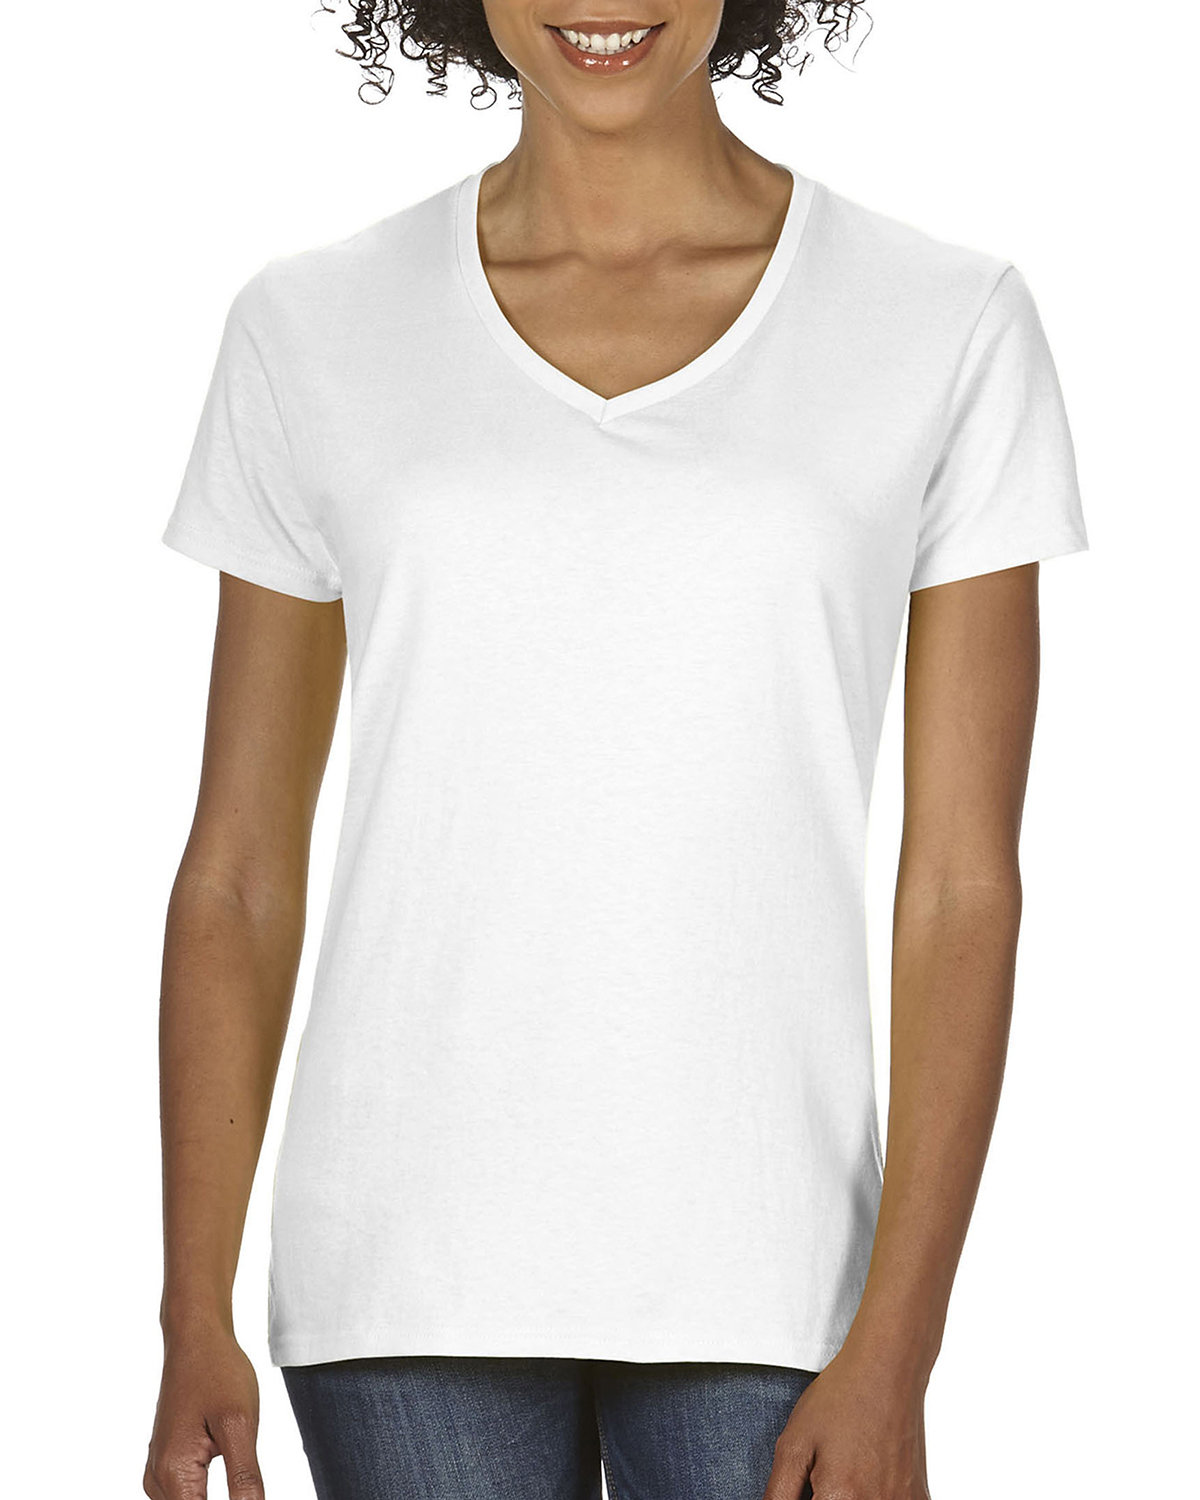 Comfort Colors Ladies' Midweight V-Neck T-Shirt WHITE